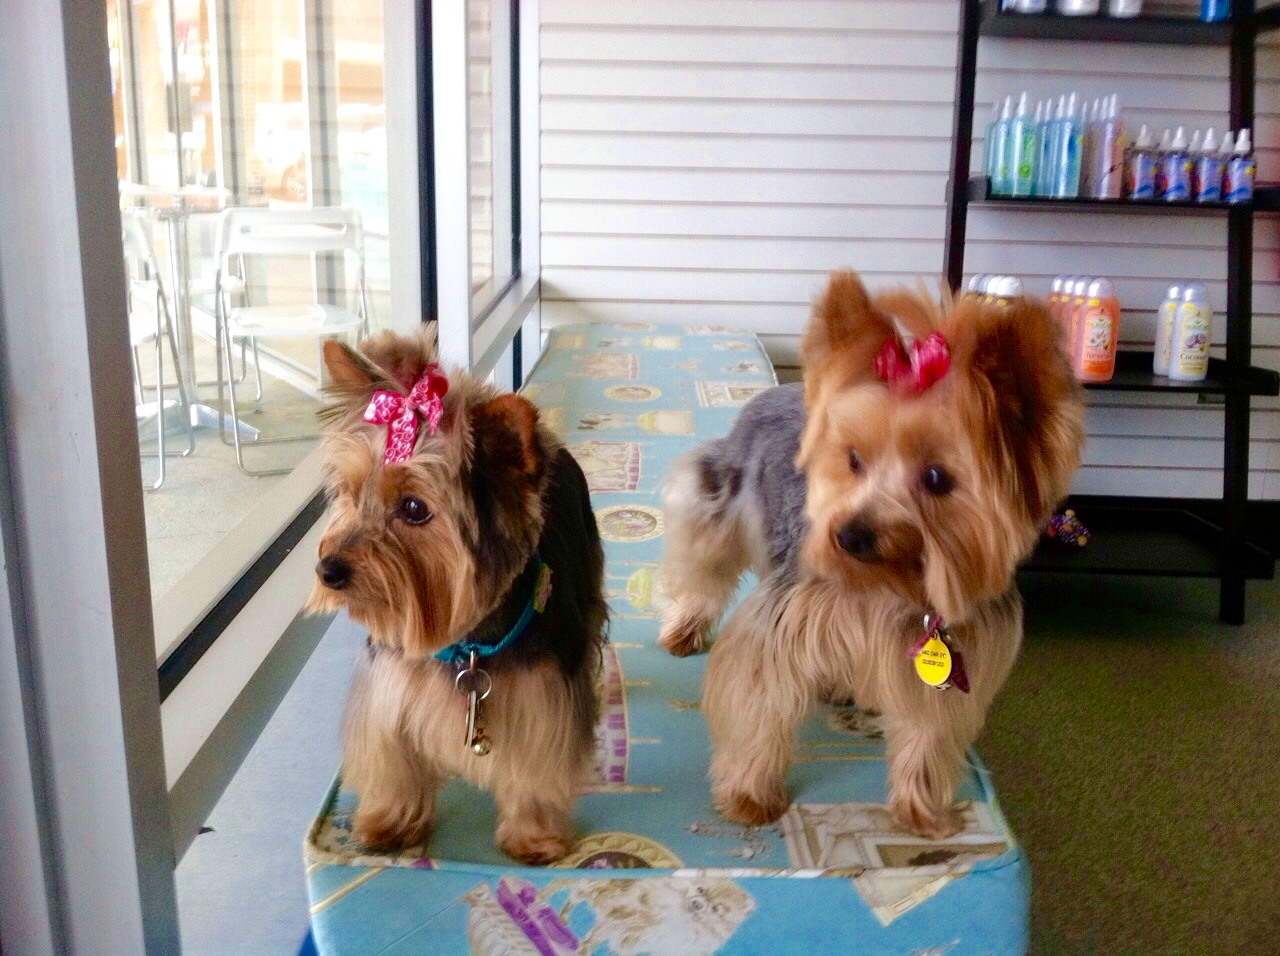 Pup in a tub greer south carolina is a self serve dog wash and yorkies grooming dog wash solutioingenieria Images